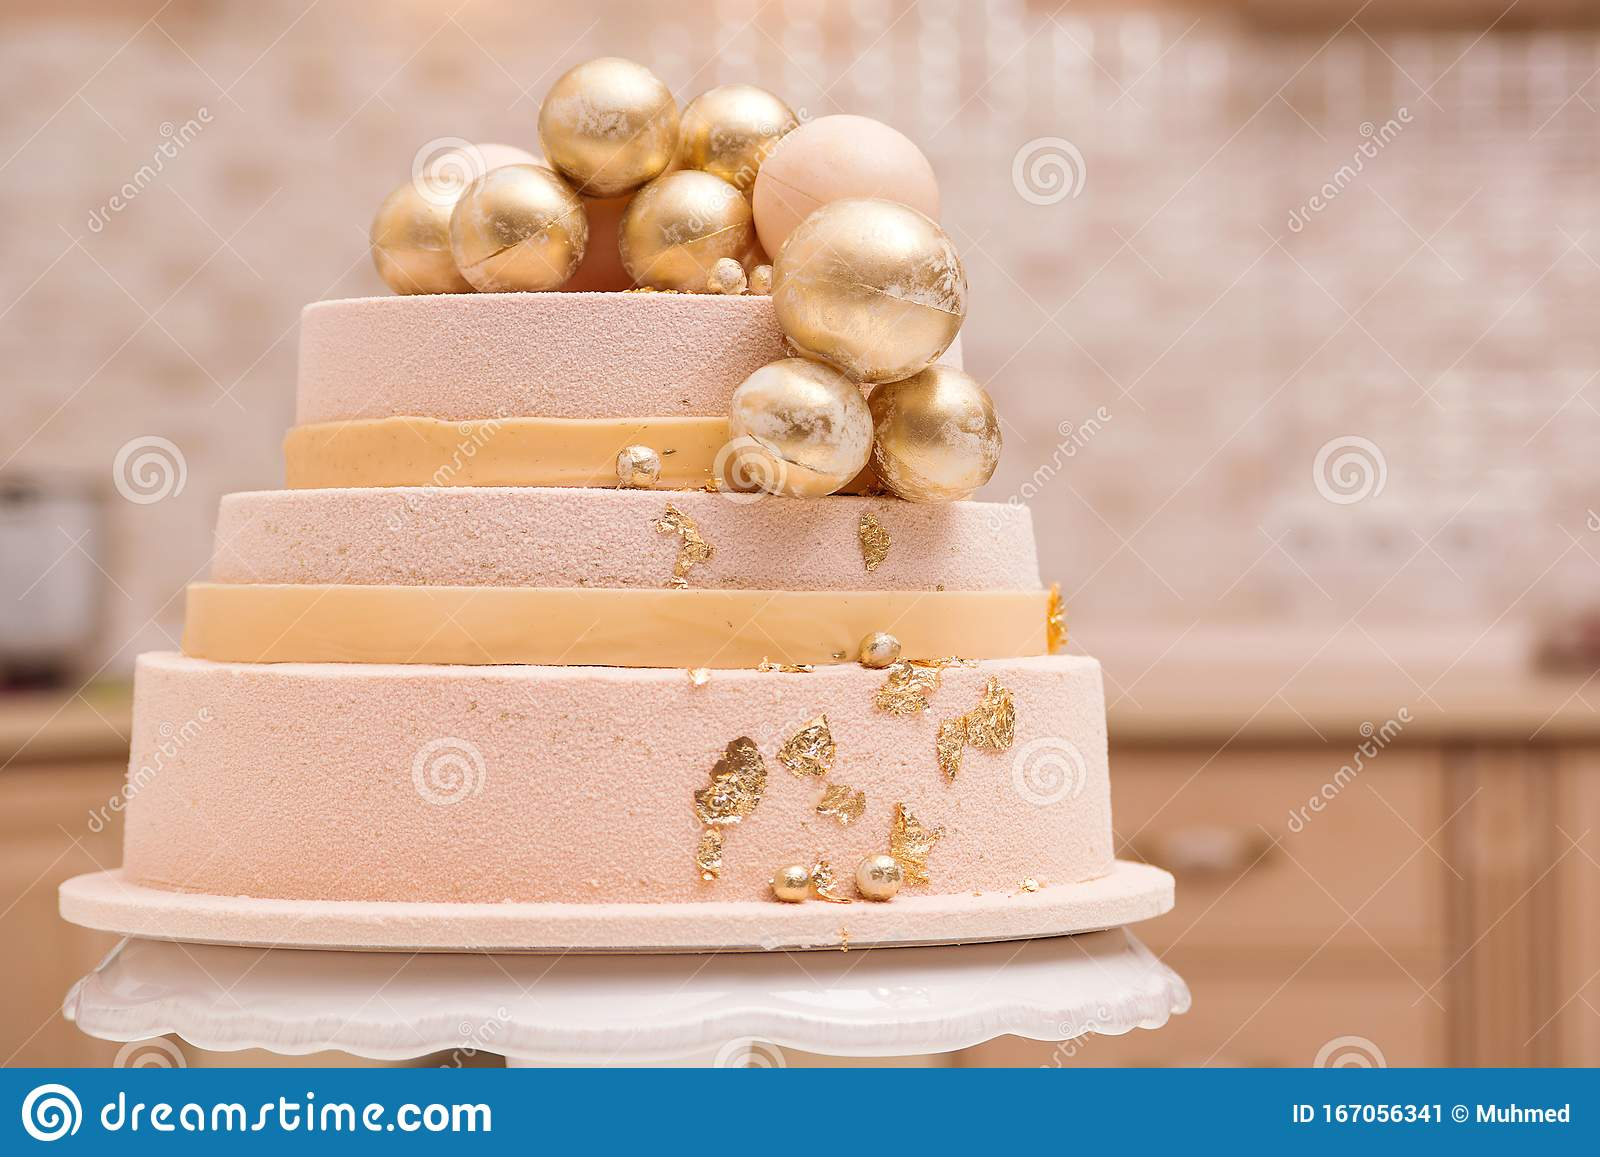 Swell Tiered Birthday Cake On White Plate Wedding Cake Decorated With Funny Birthday Cards Online Inifodamsfinfo